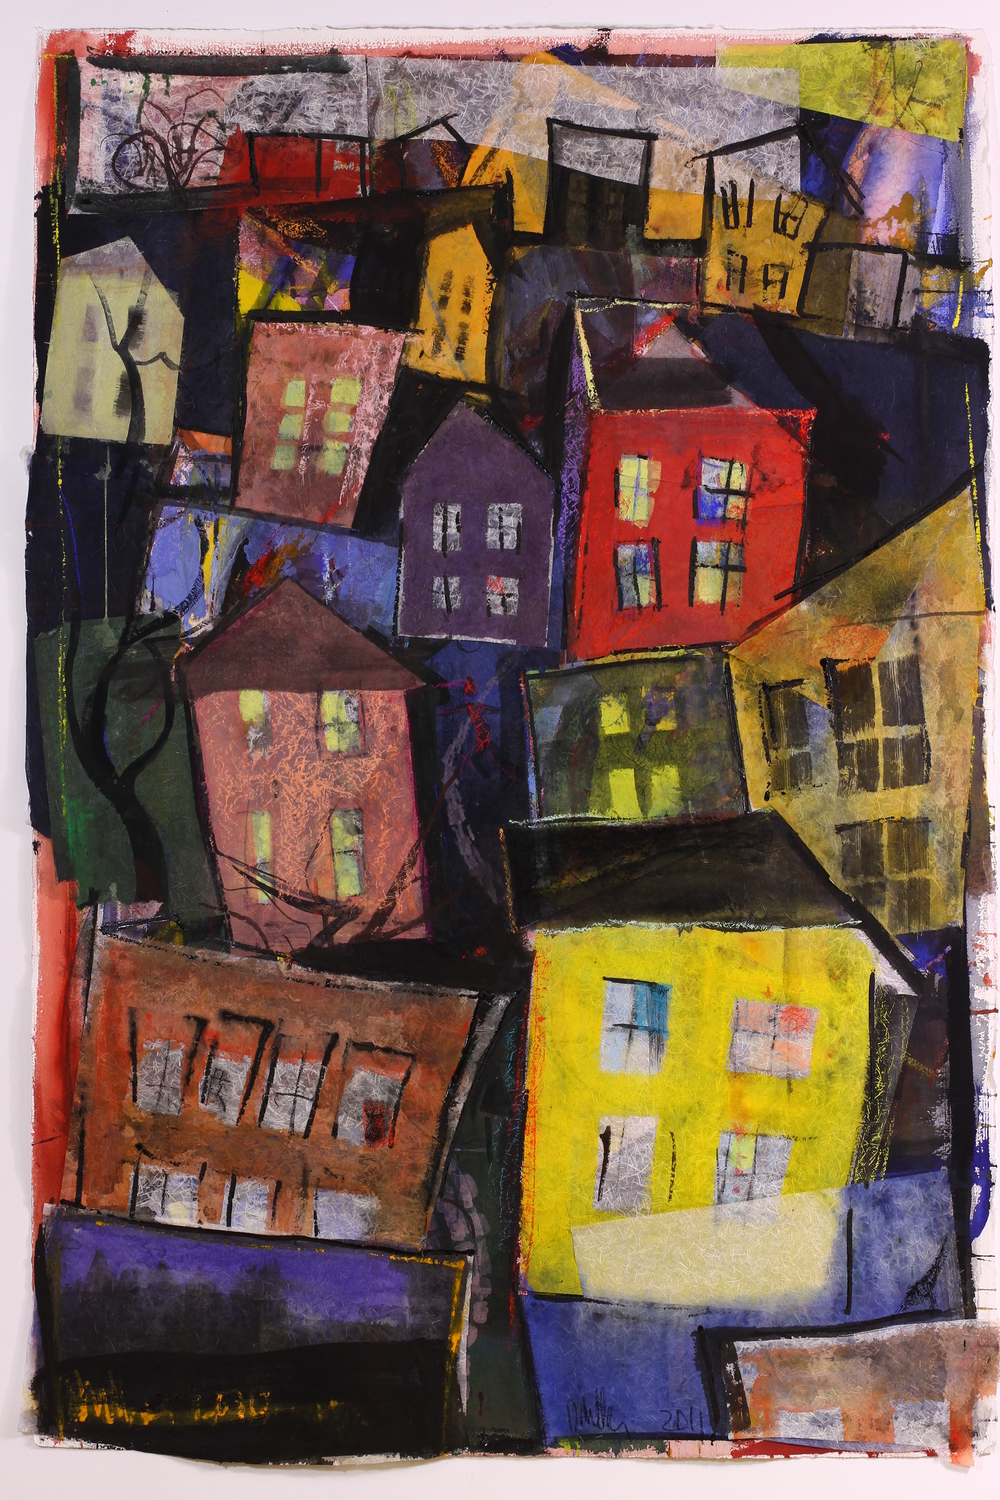 "Jumbled Town - 2011 - Mixed media - 60 x 40"" image size"